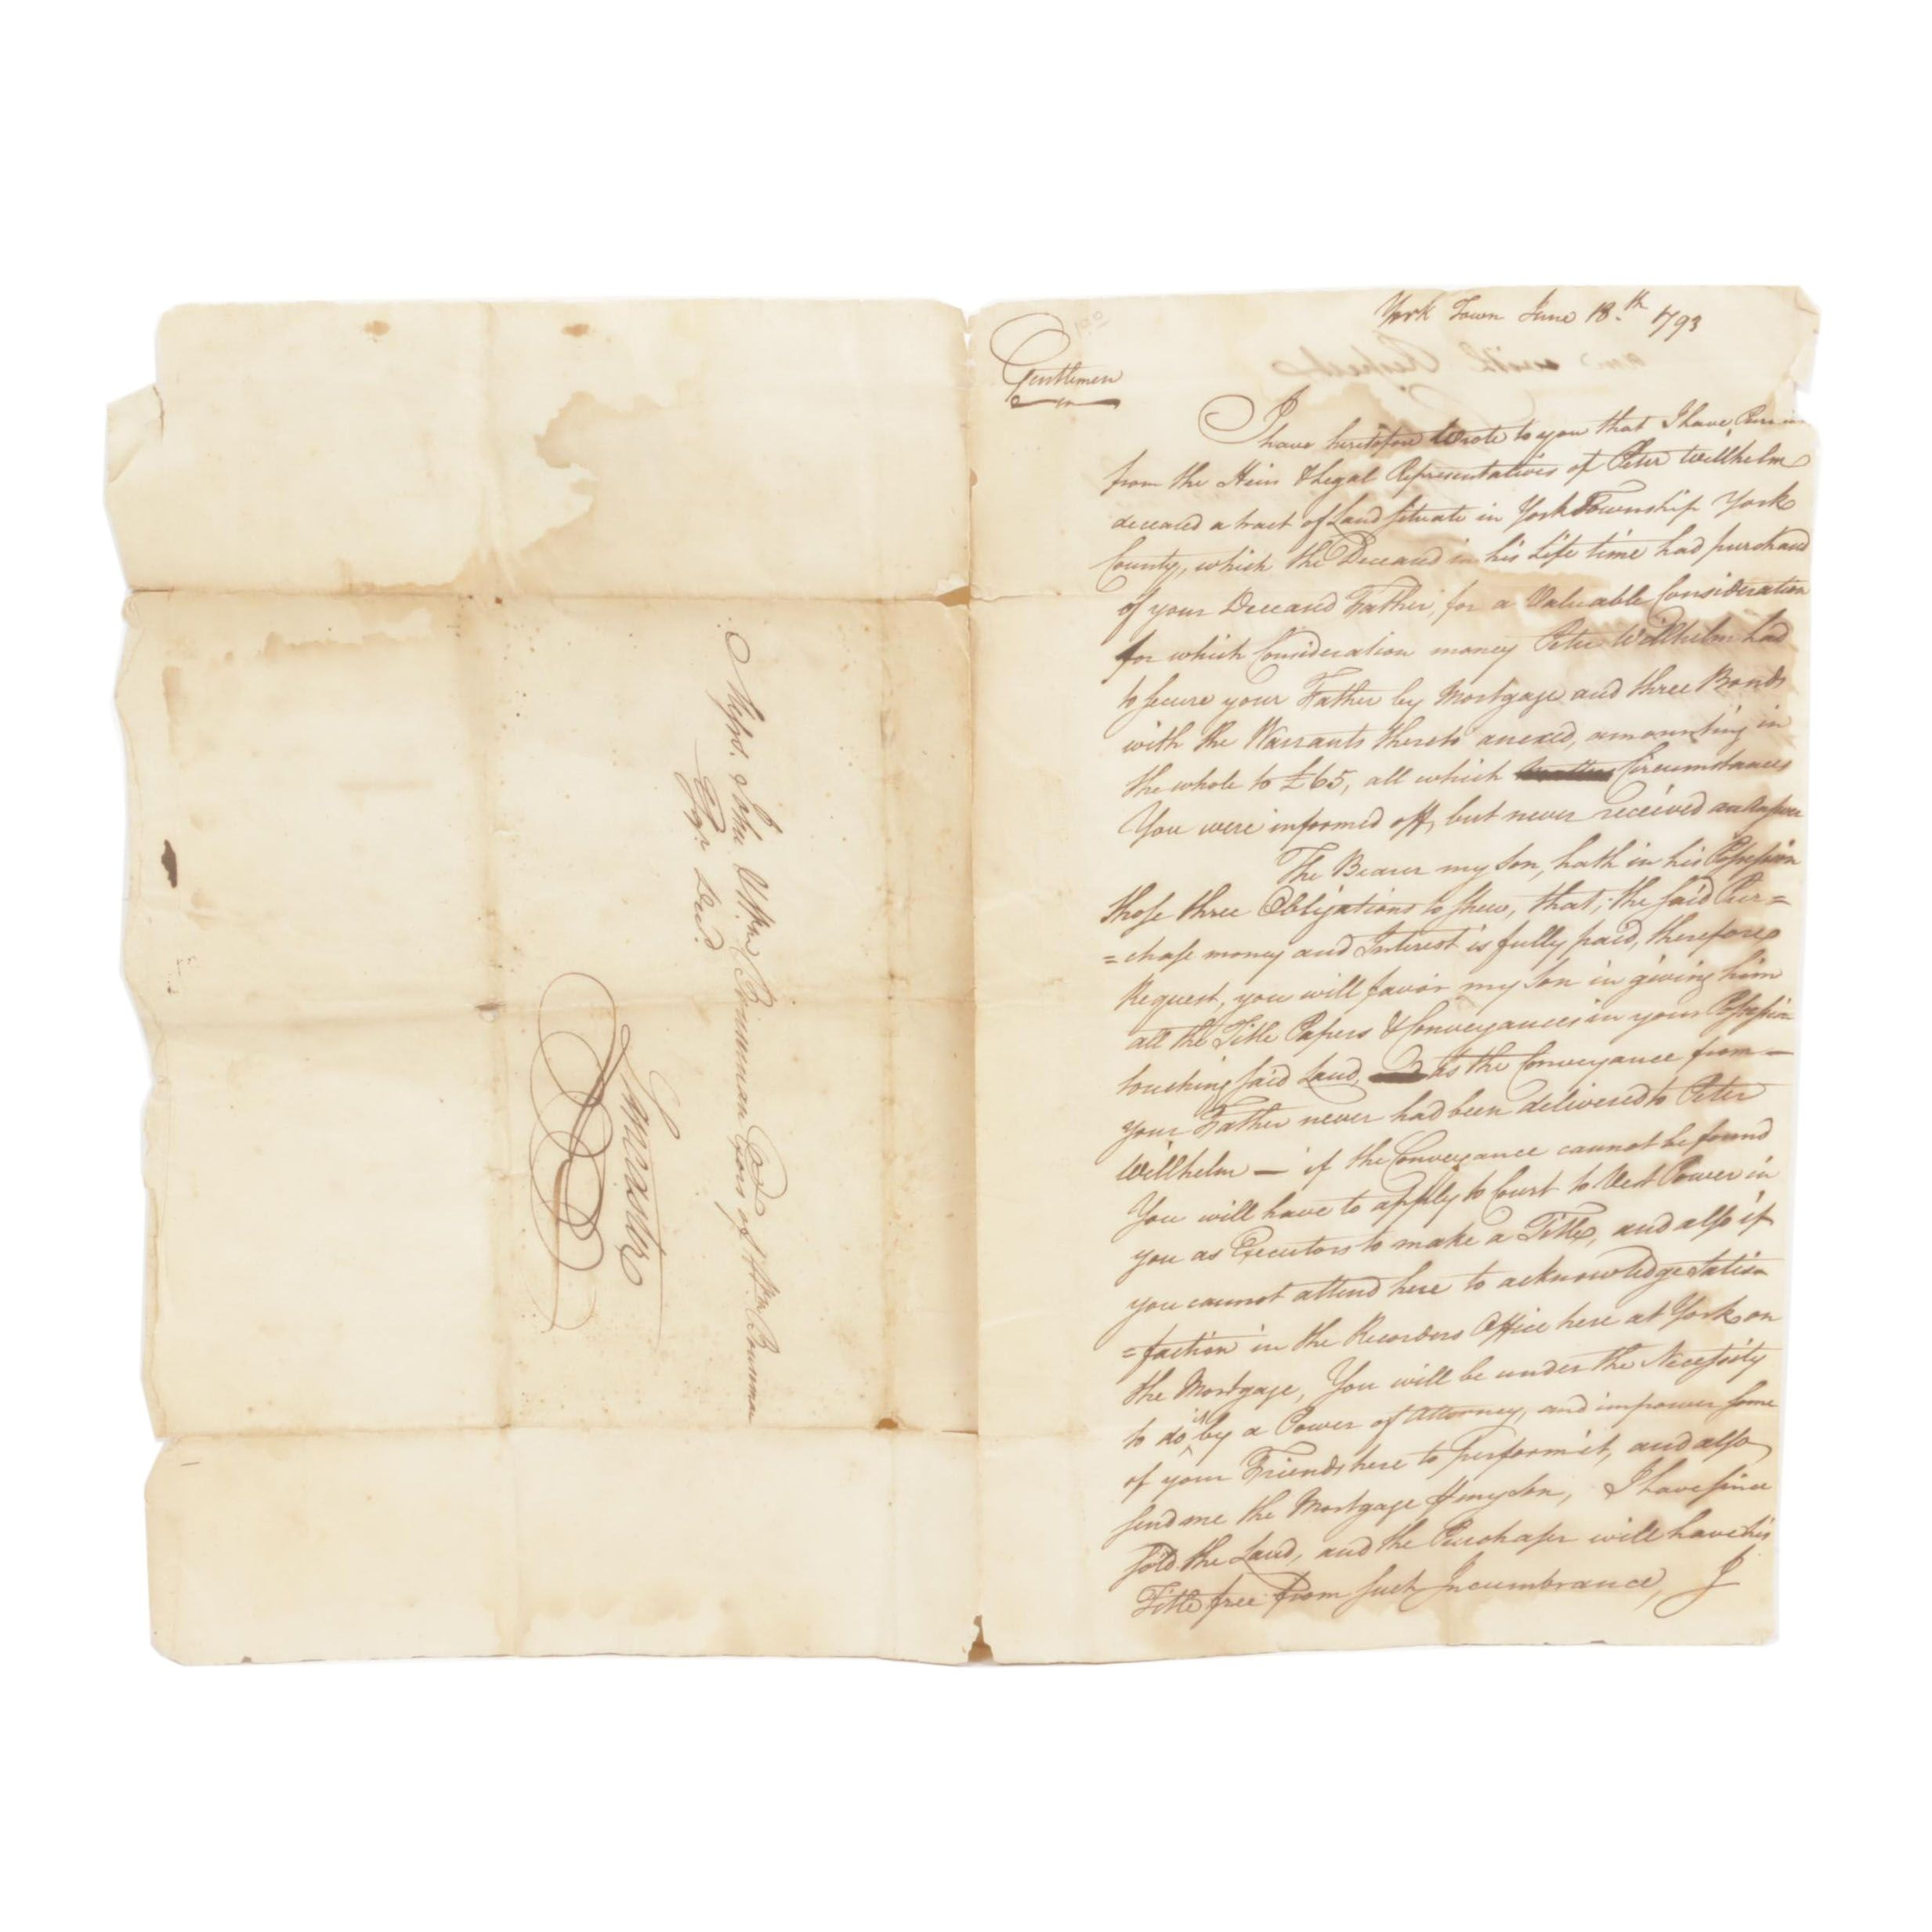 Zach. Shryart Colonial Legal Correspondence, 1793